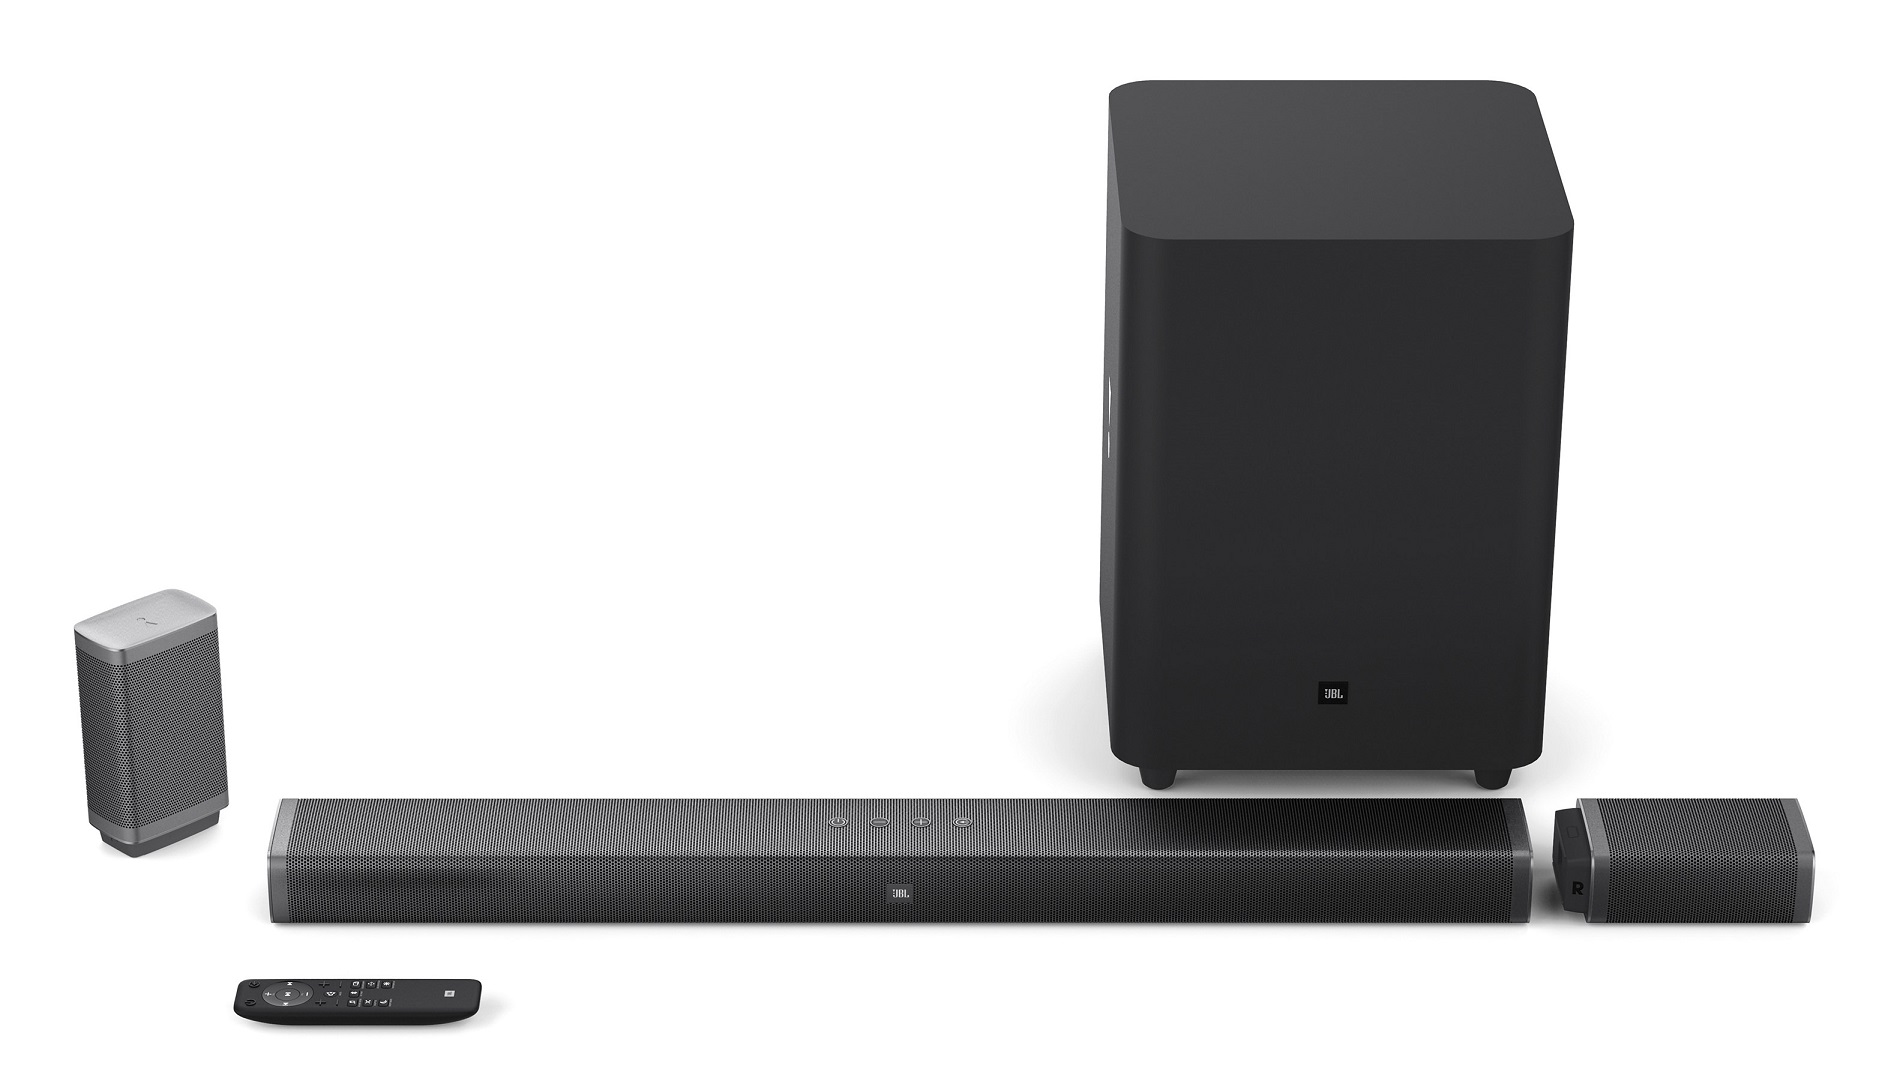 Loa Bluetooth SOUNDBAR JBL 5.1